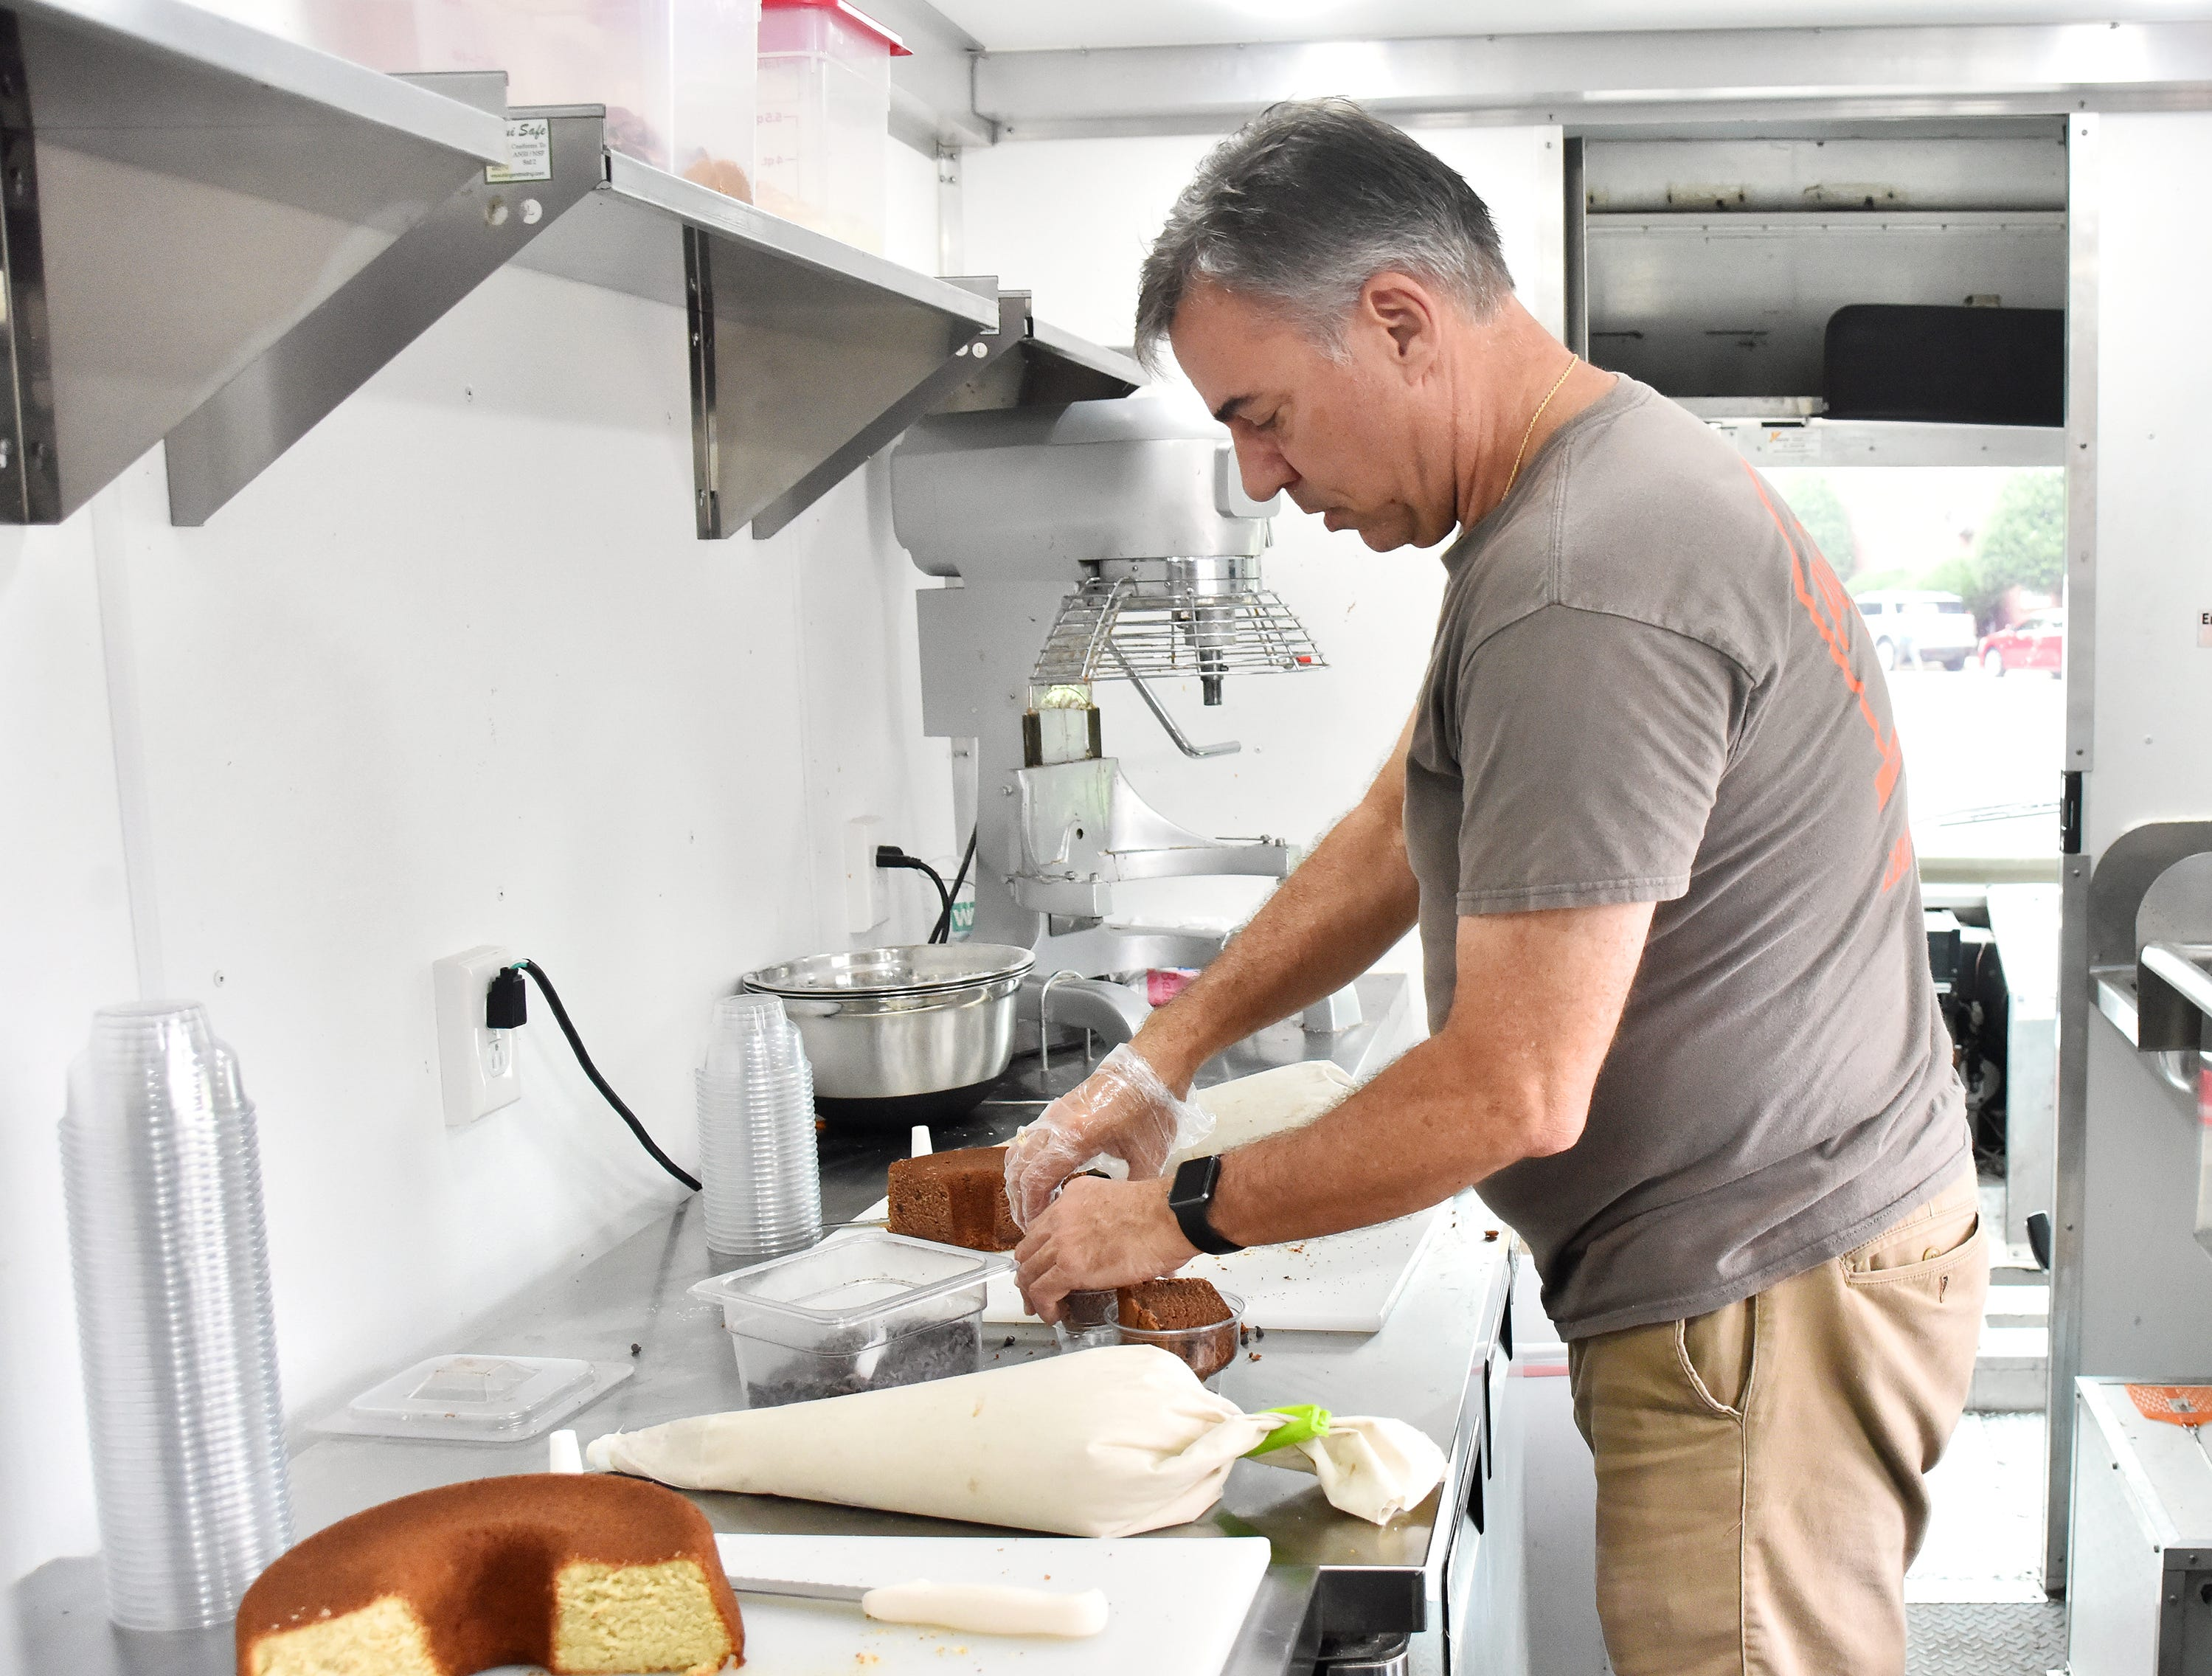 Jeff Bennett prepares chocolate pound cake while operating his food truck at Anderson University.